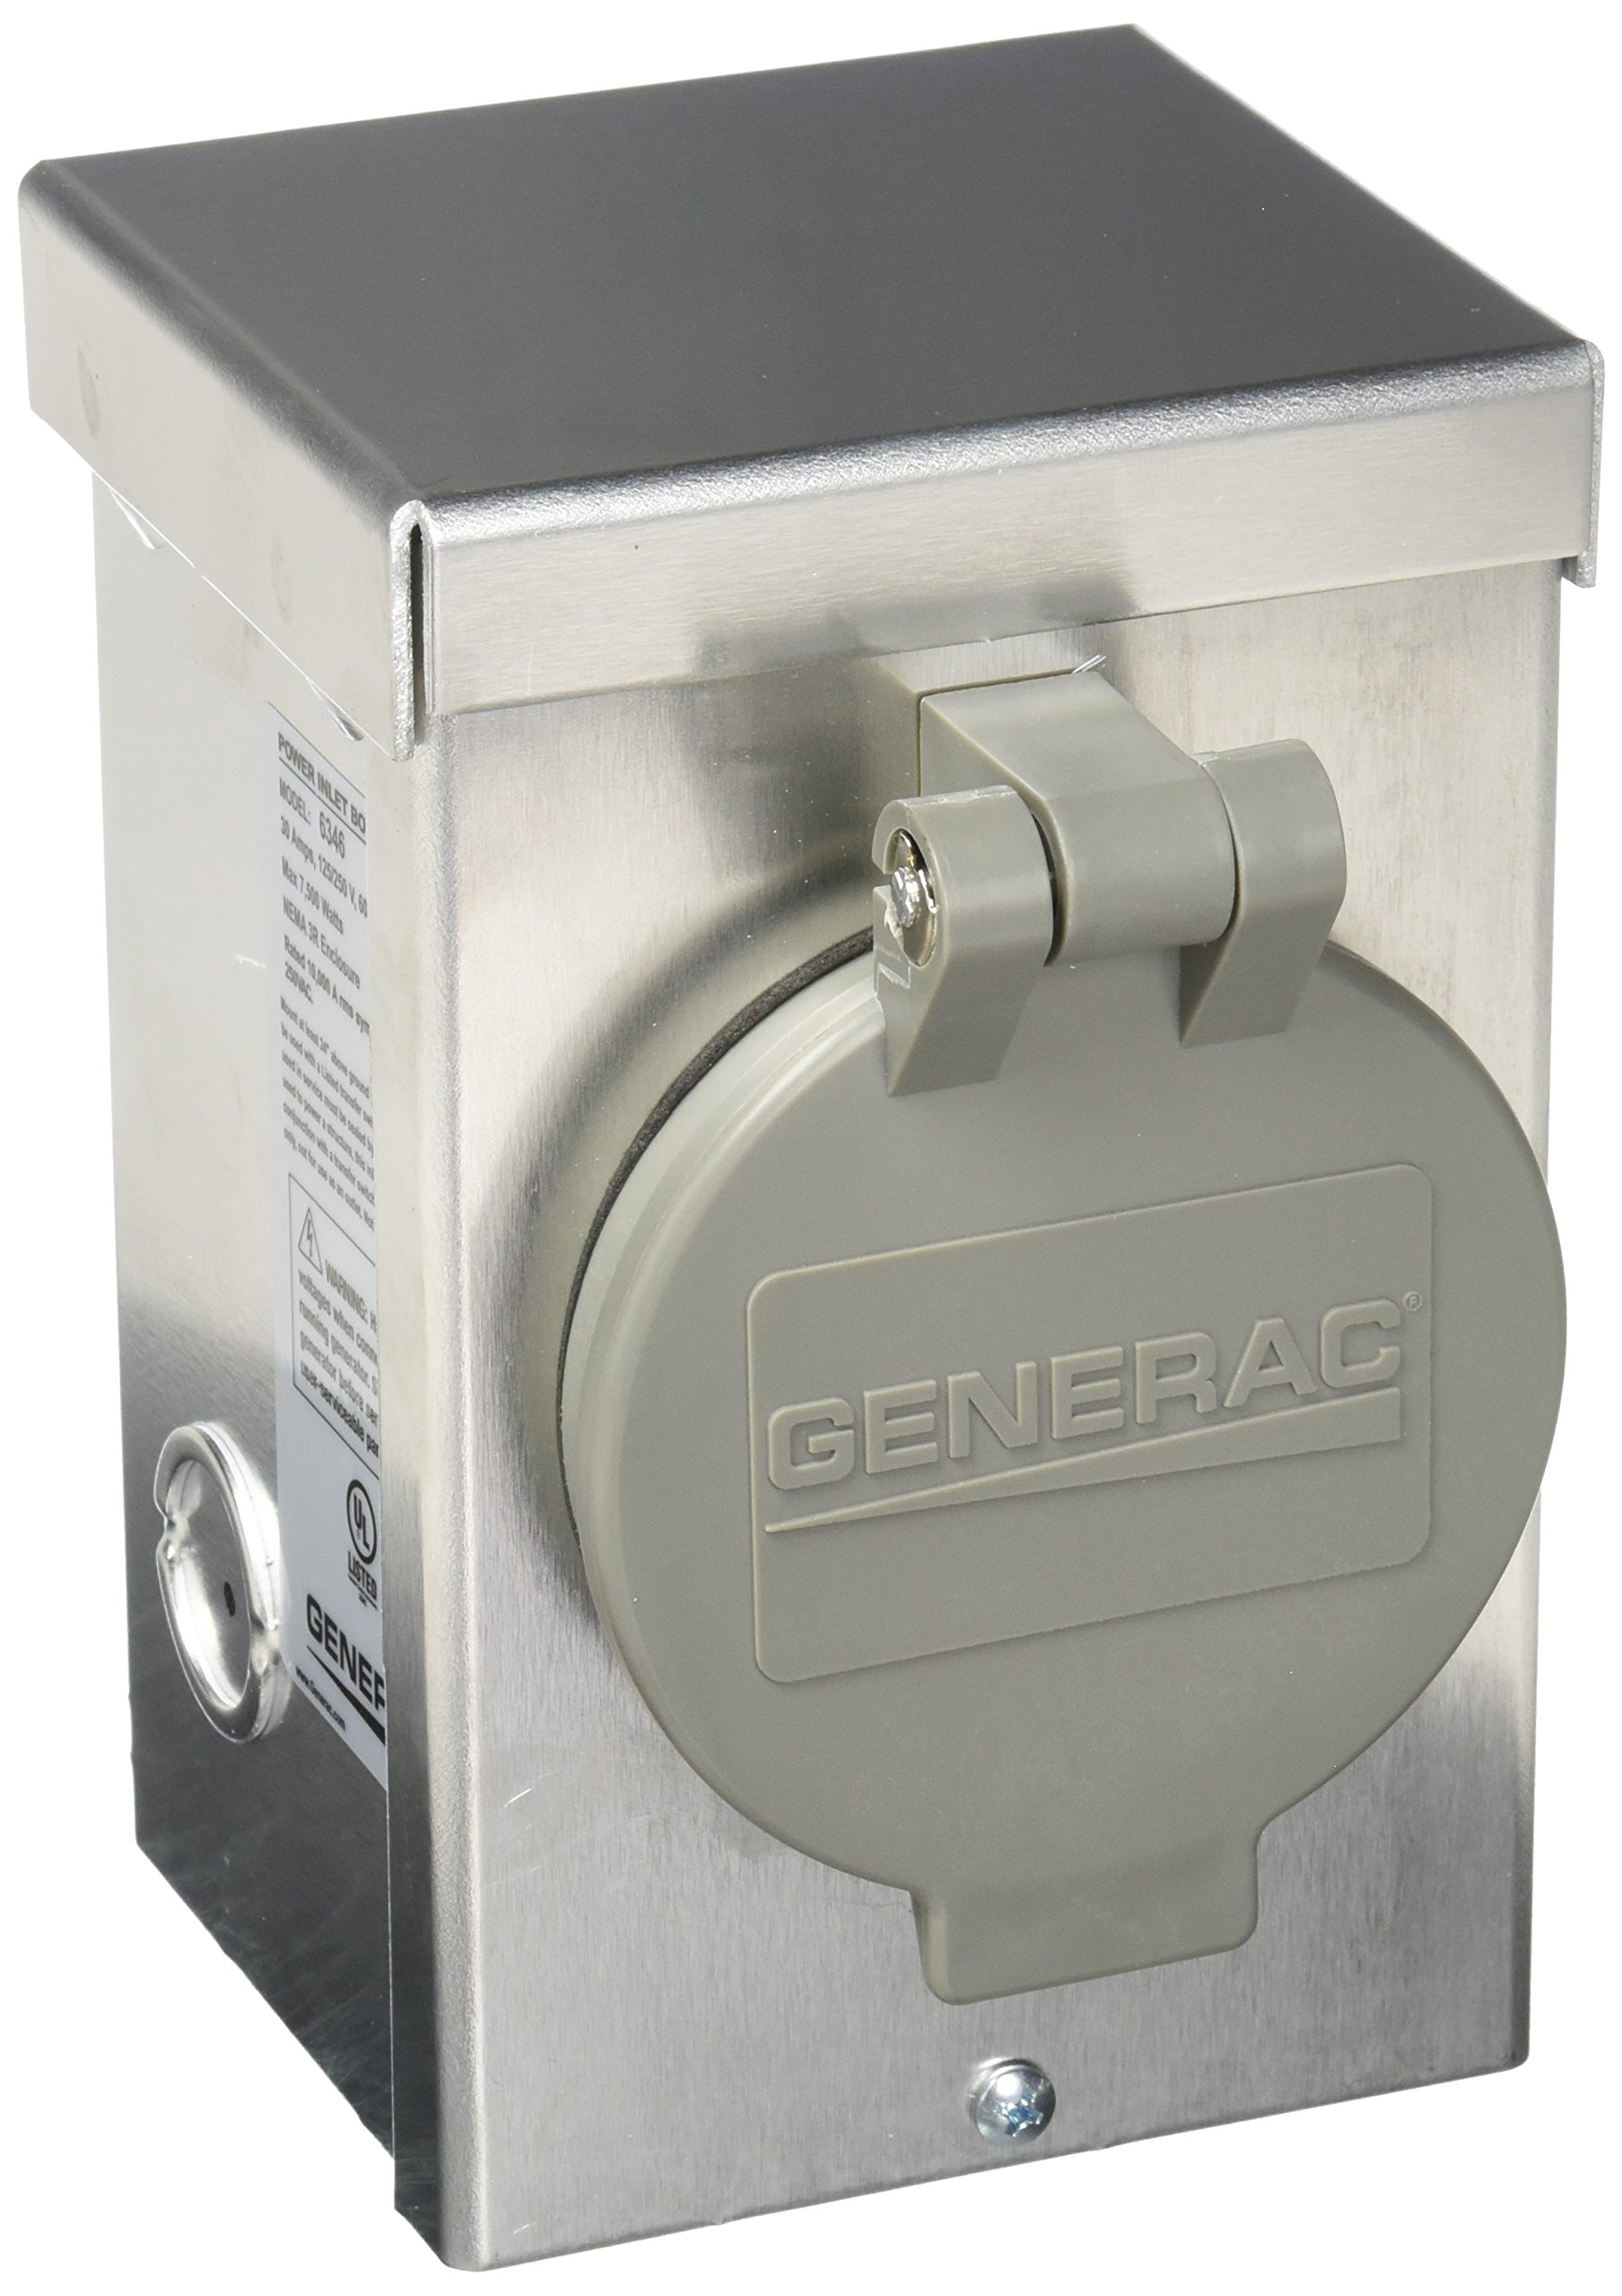 Generac 6346 30-Amp 125/250V Aluminum Power Inlet Box with Spring-Loaded Flip Lid by Generac